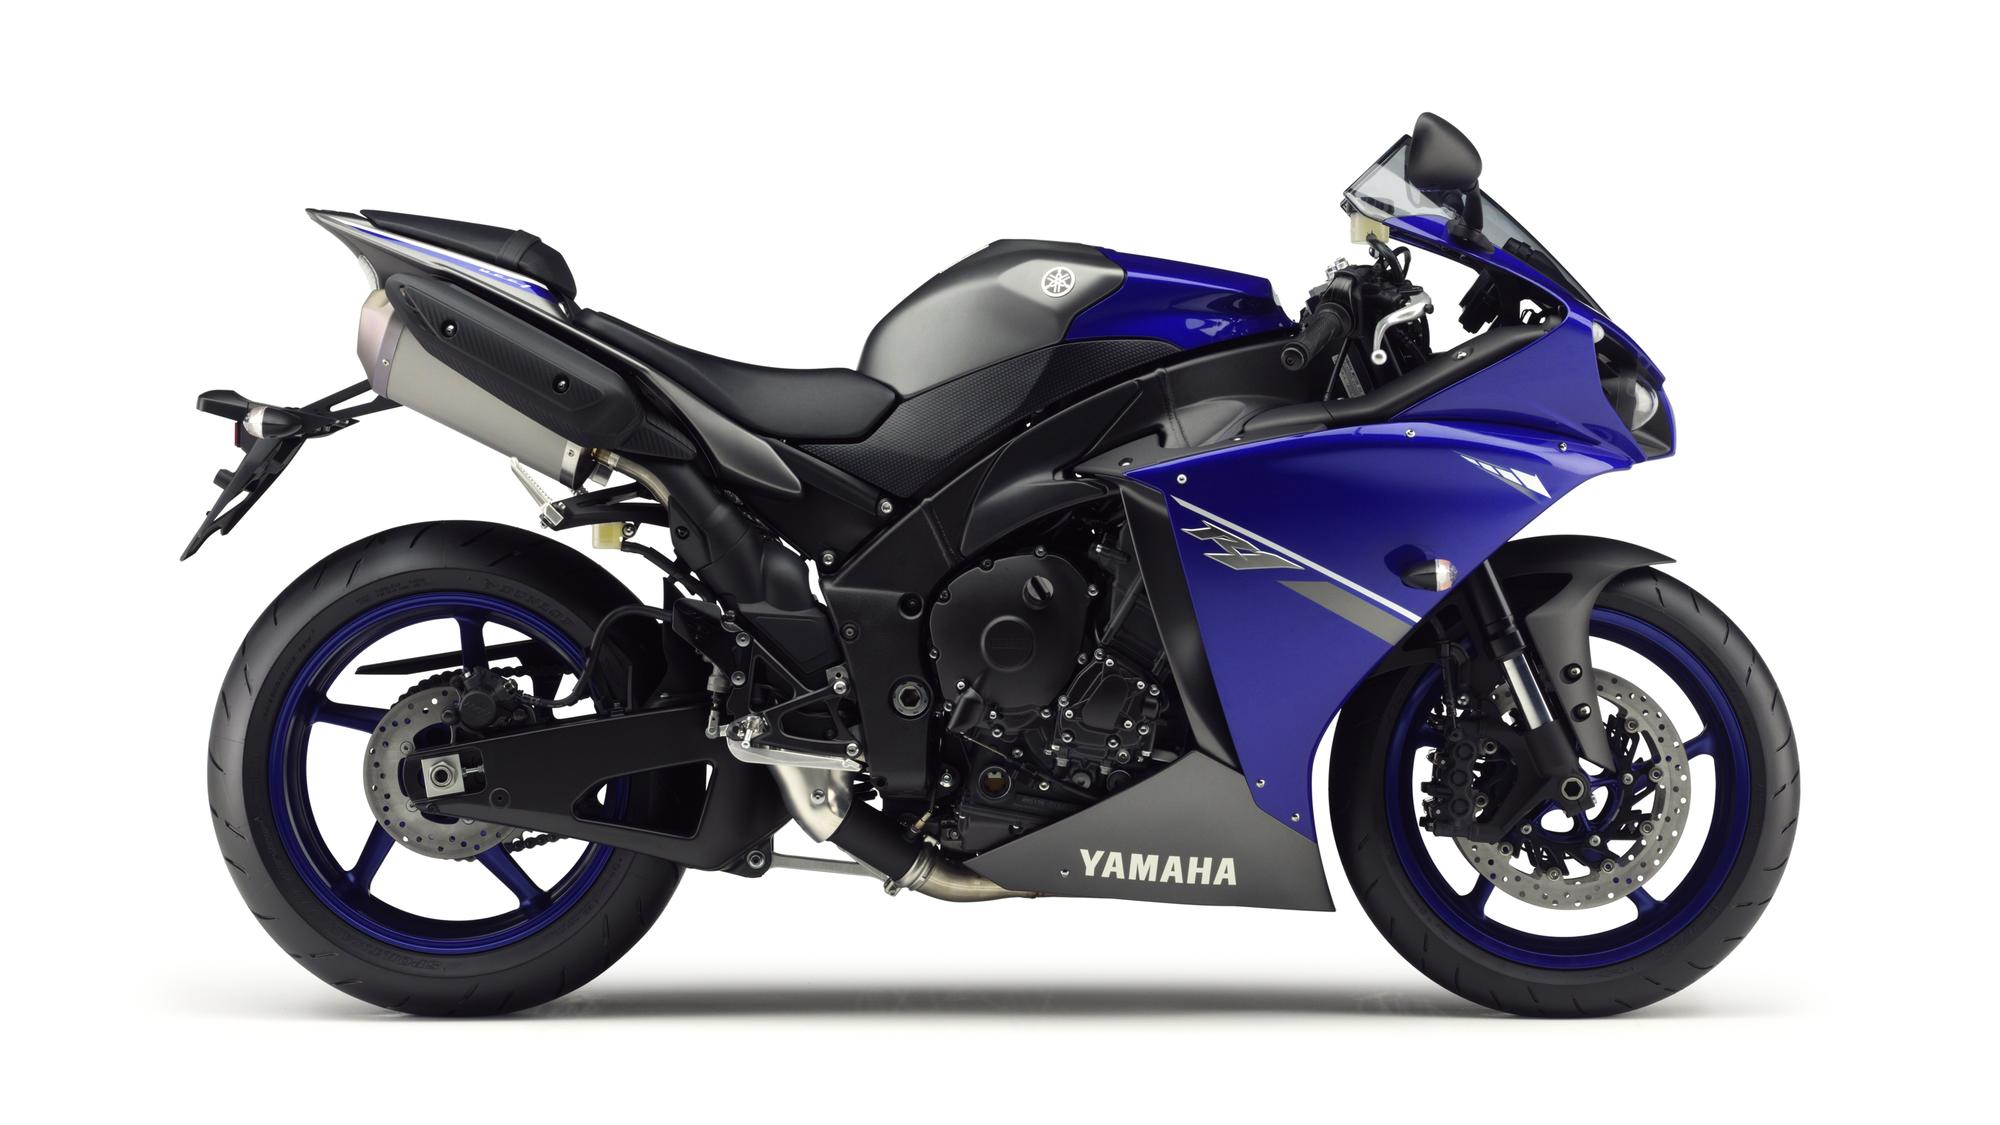 Yamaha R1 Blue 2012 Wallpaper For Desktop